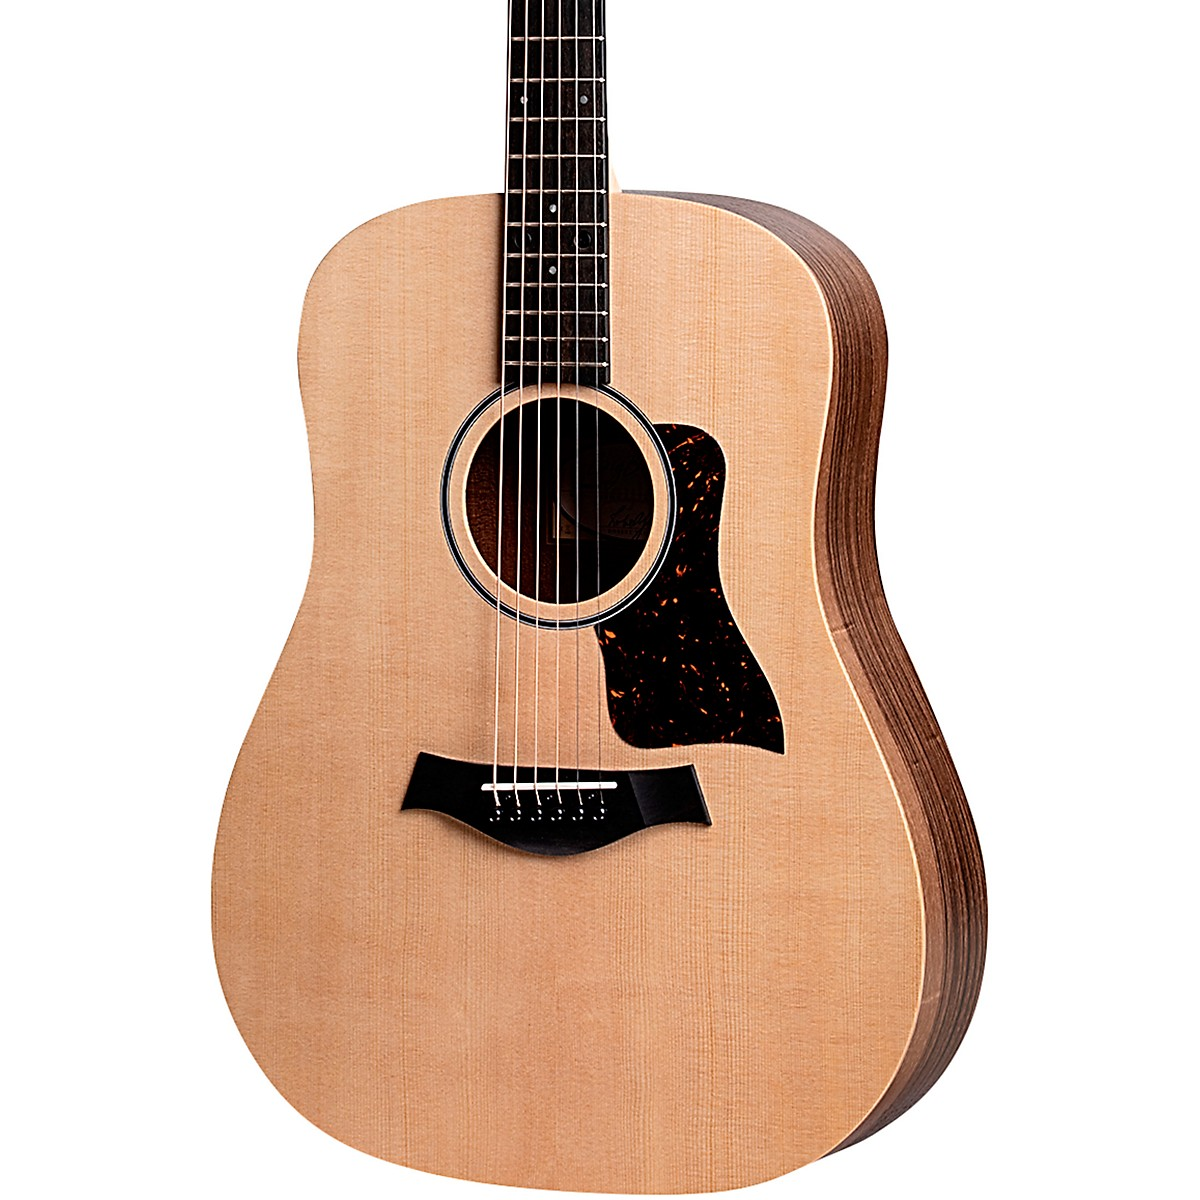 Taylor 214ce Figured Ovangkol Deluxe Limited Edition Grand Auditorium Acoustic-Electric Guitar